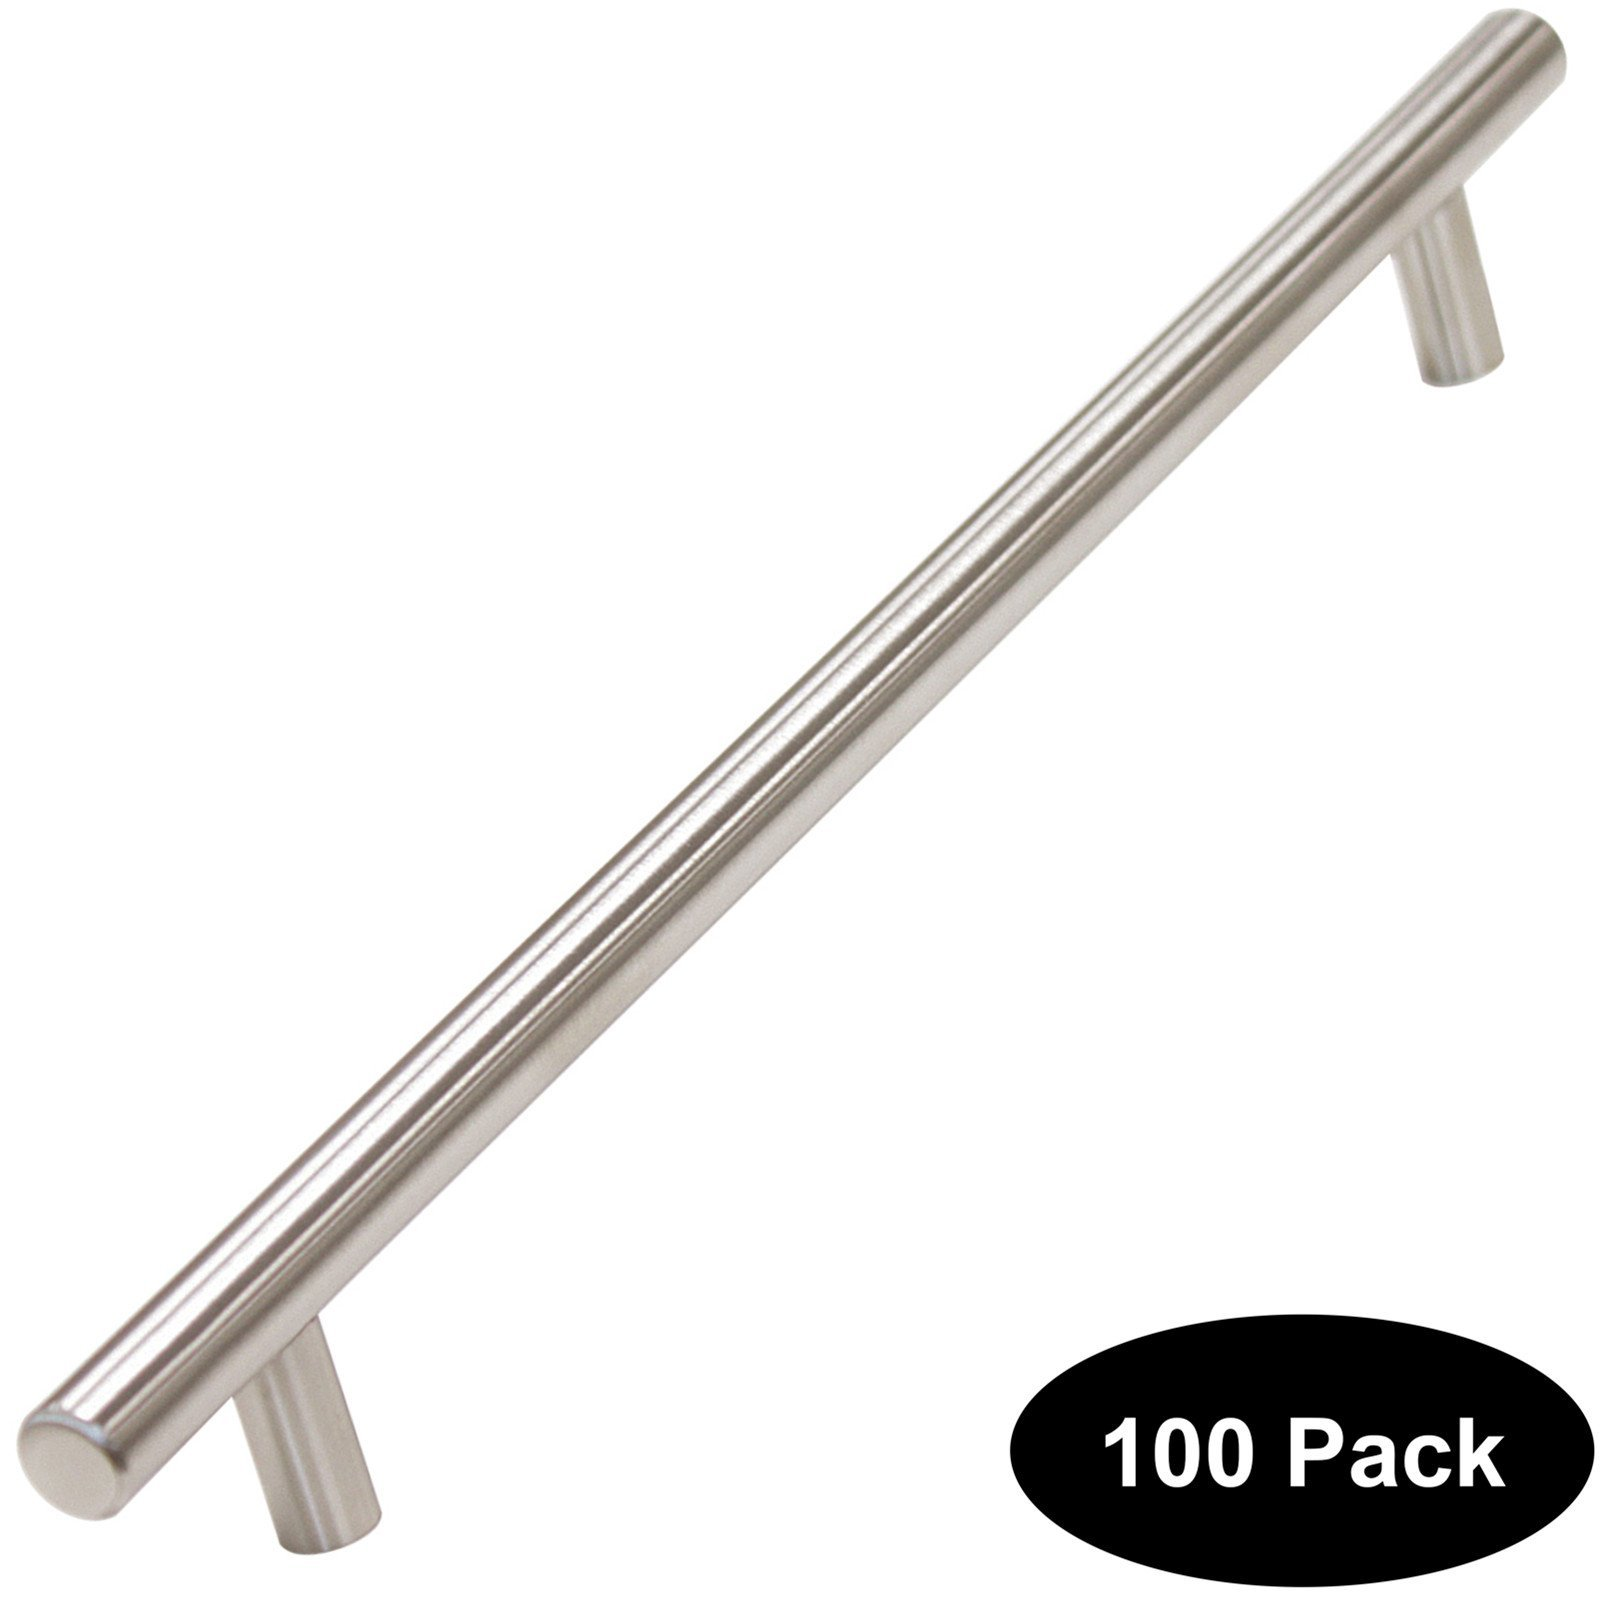 100 pack 256mm(10inch) Hole Centers Stainless Steel Kitchen Cabinet Door Handles and Pulls Cabinet Knobs Length 320mm(12.8inch) Brushed Nickel